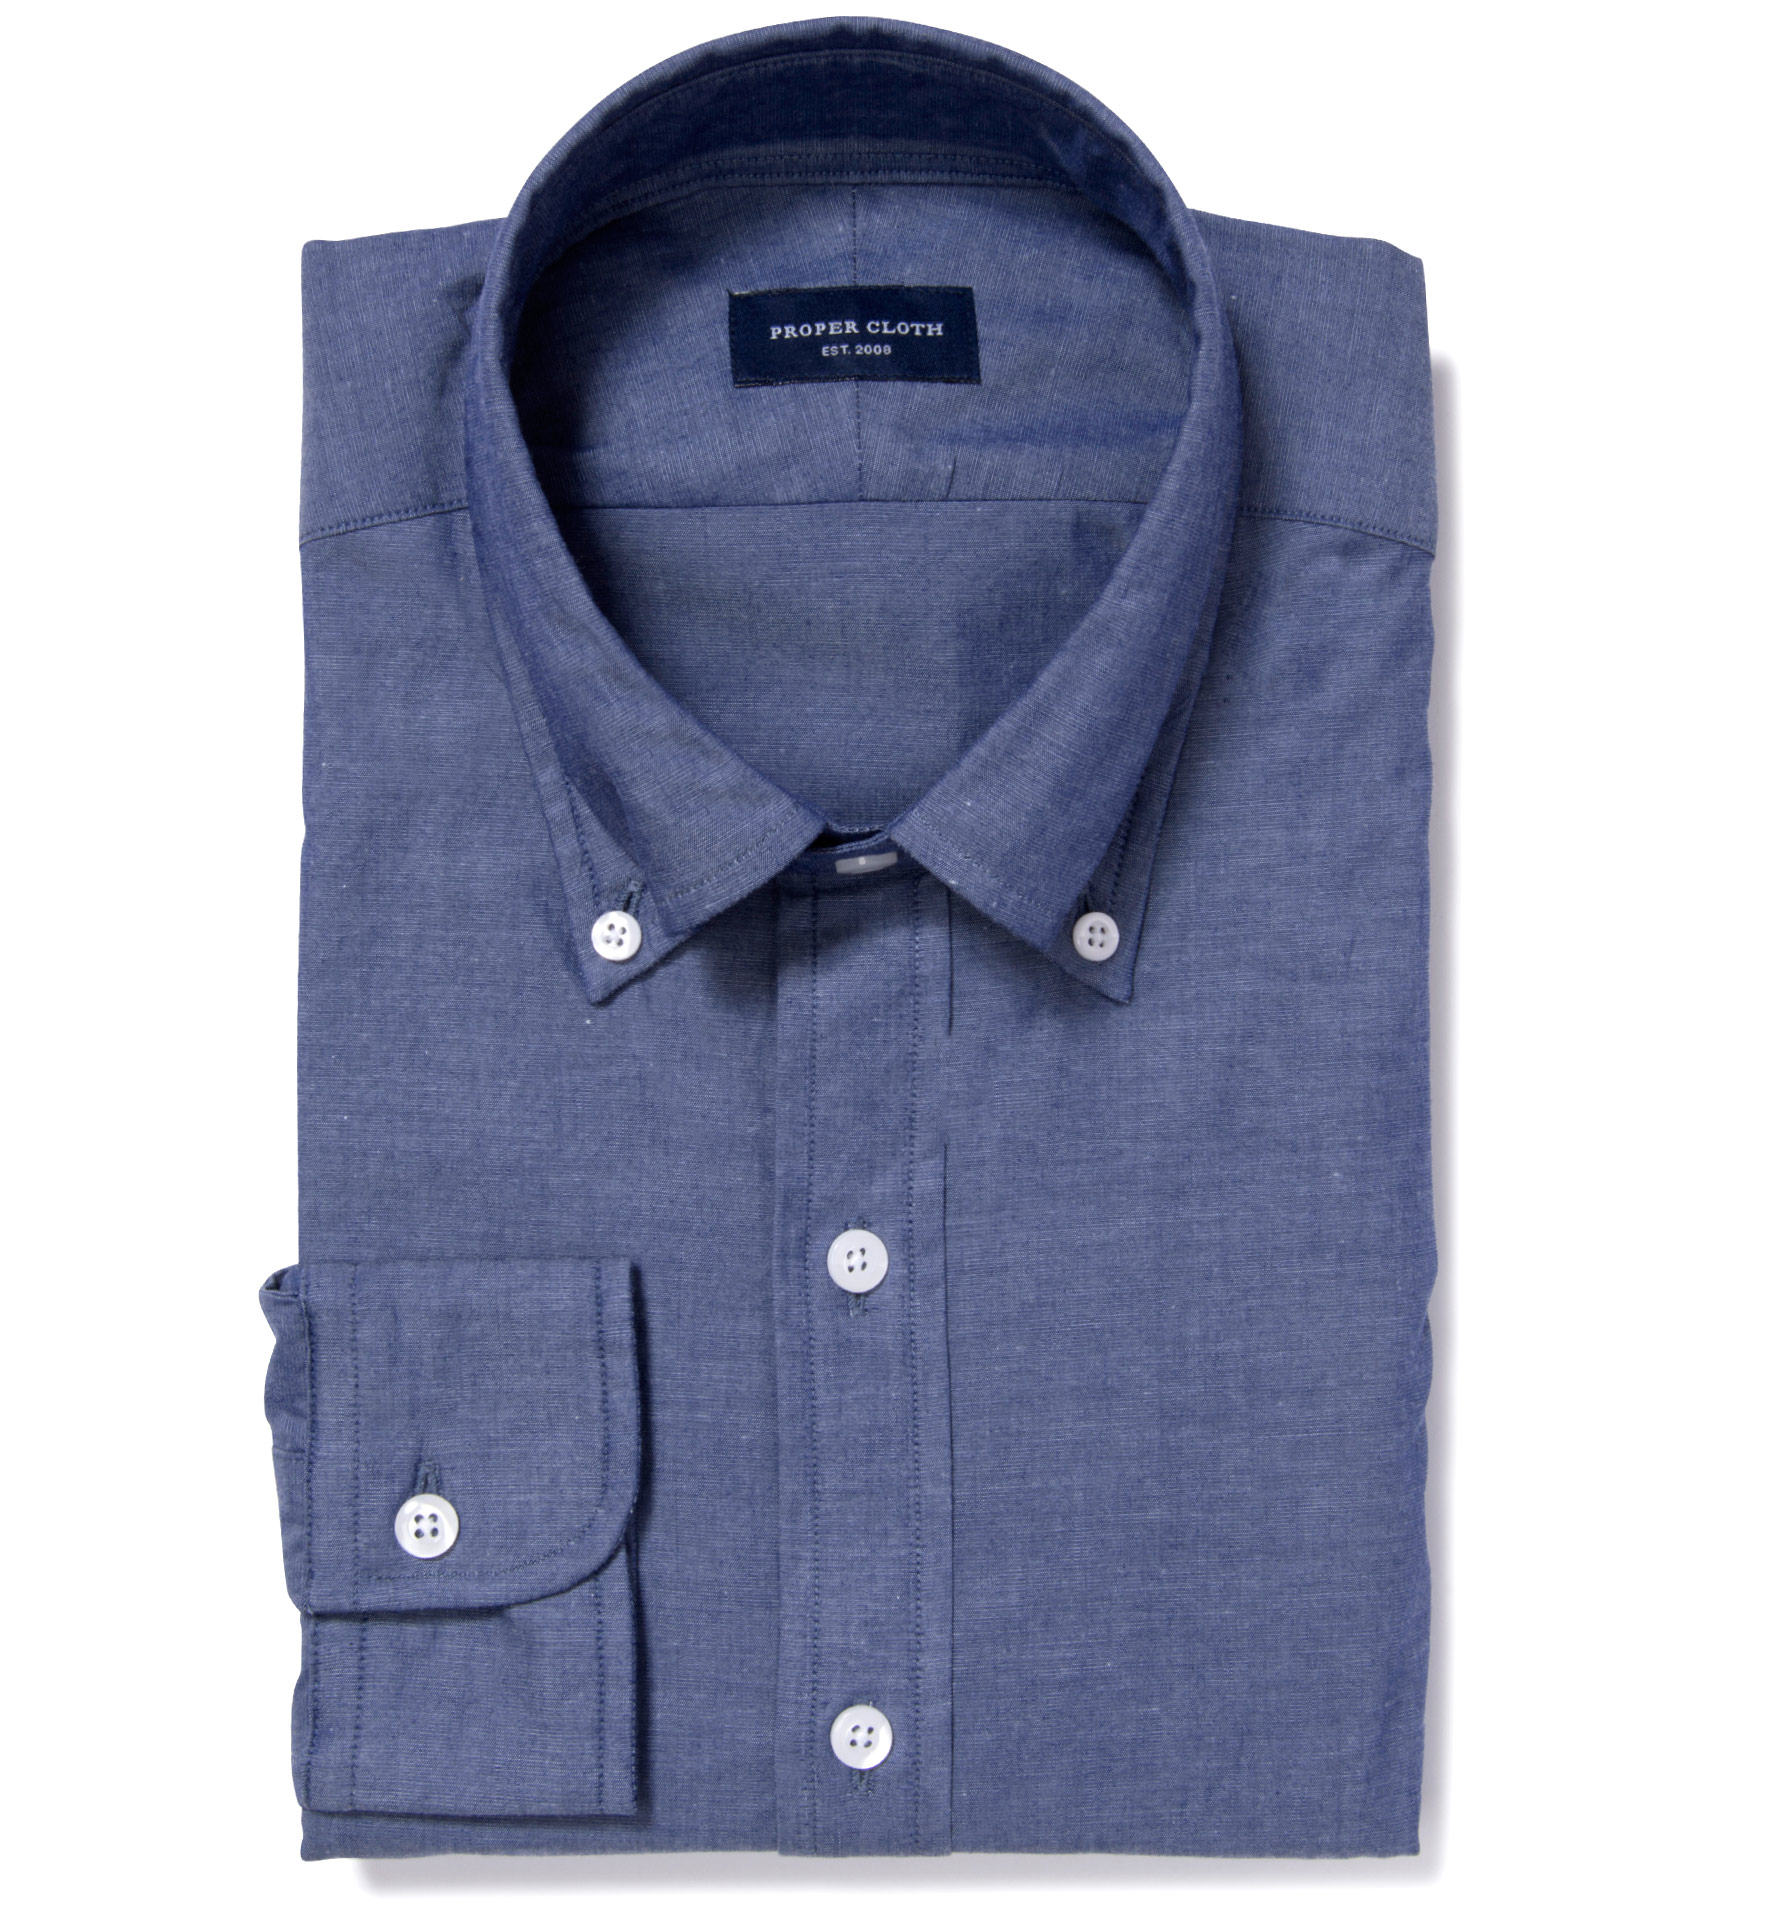 Howard street chambray tailor made shirt by proper cloth for Proper cloth custom shirt price